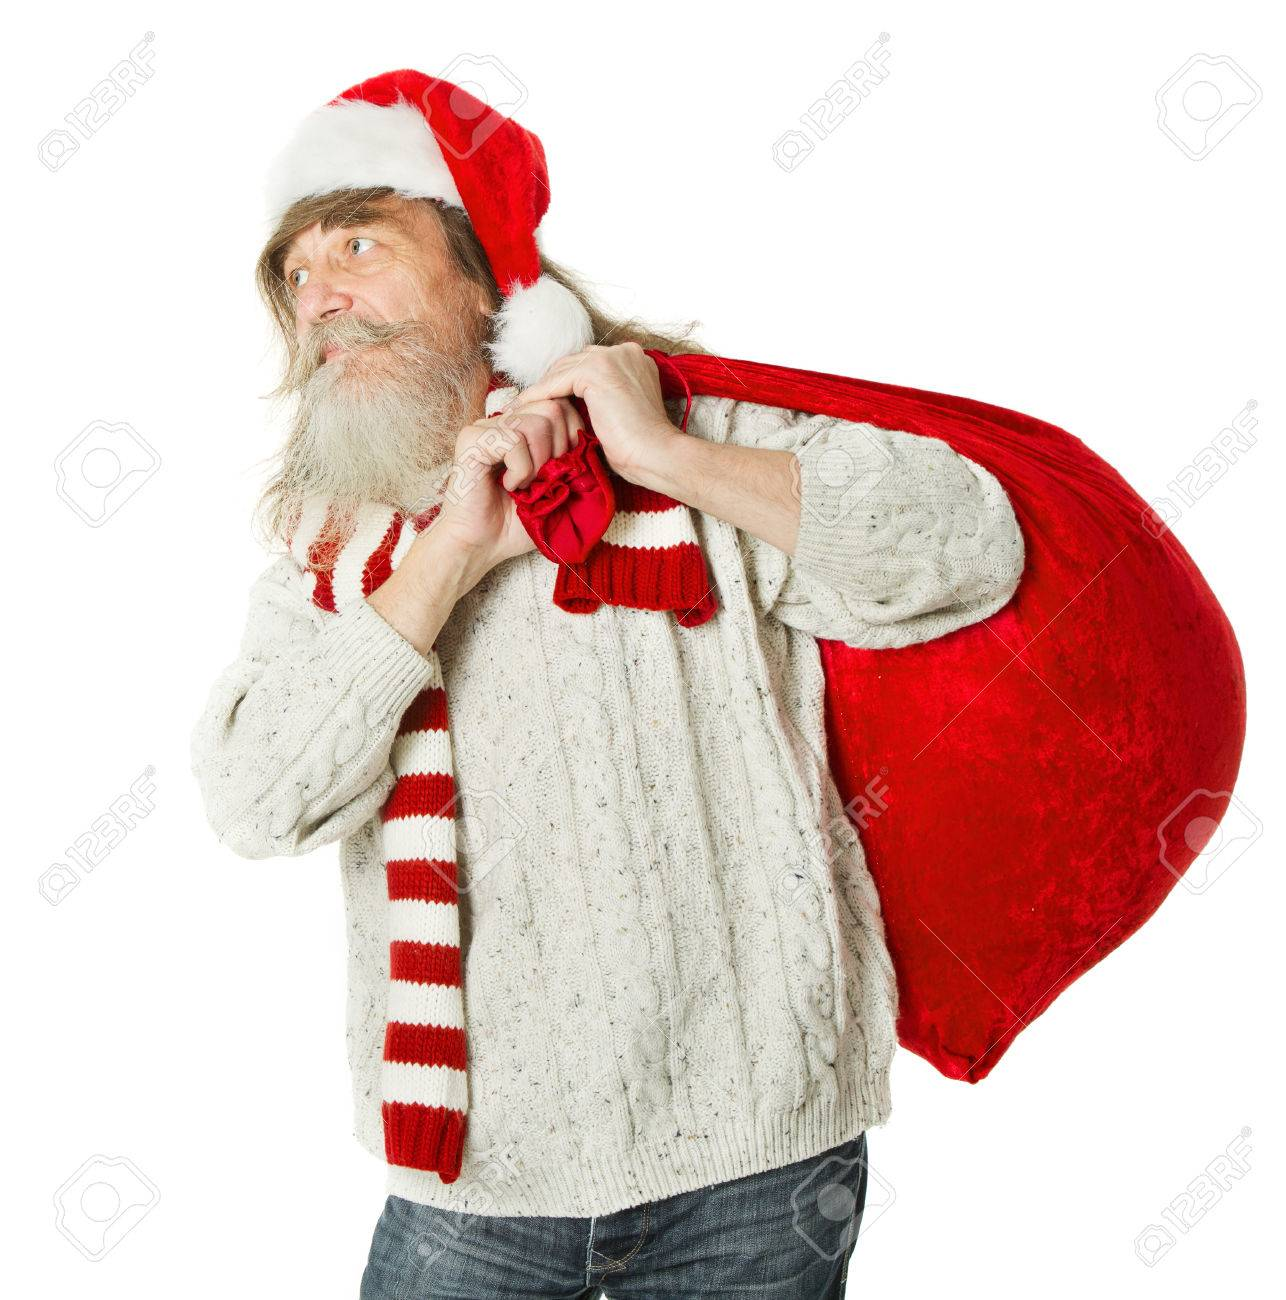 Christmas Old Man With Beard In Red Hat Carrying Santa Claus Stock Photo Picture And Royalty Free Image Image 22427446